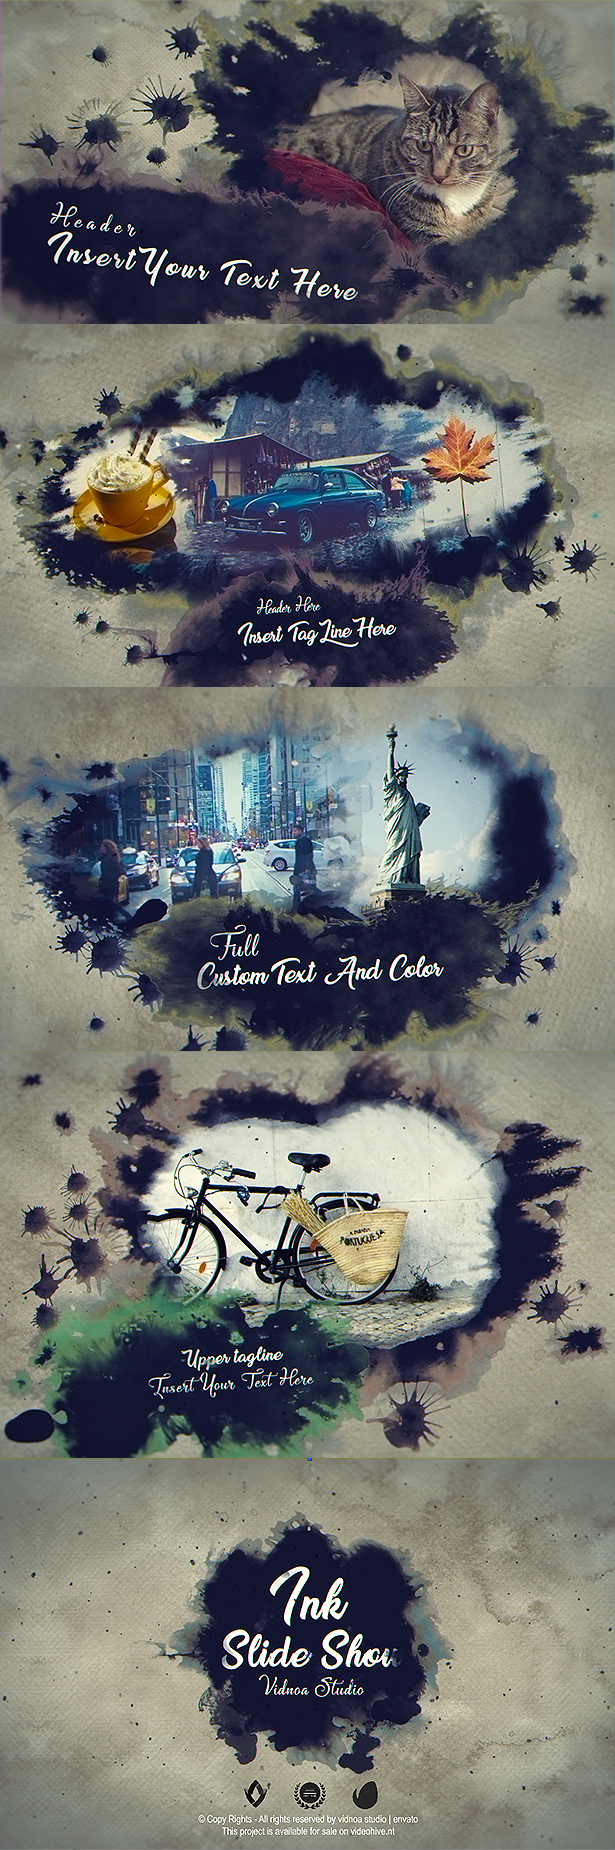 Ink Bleed (Abstract) After Effects Templates | F5-Design com